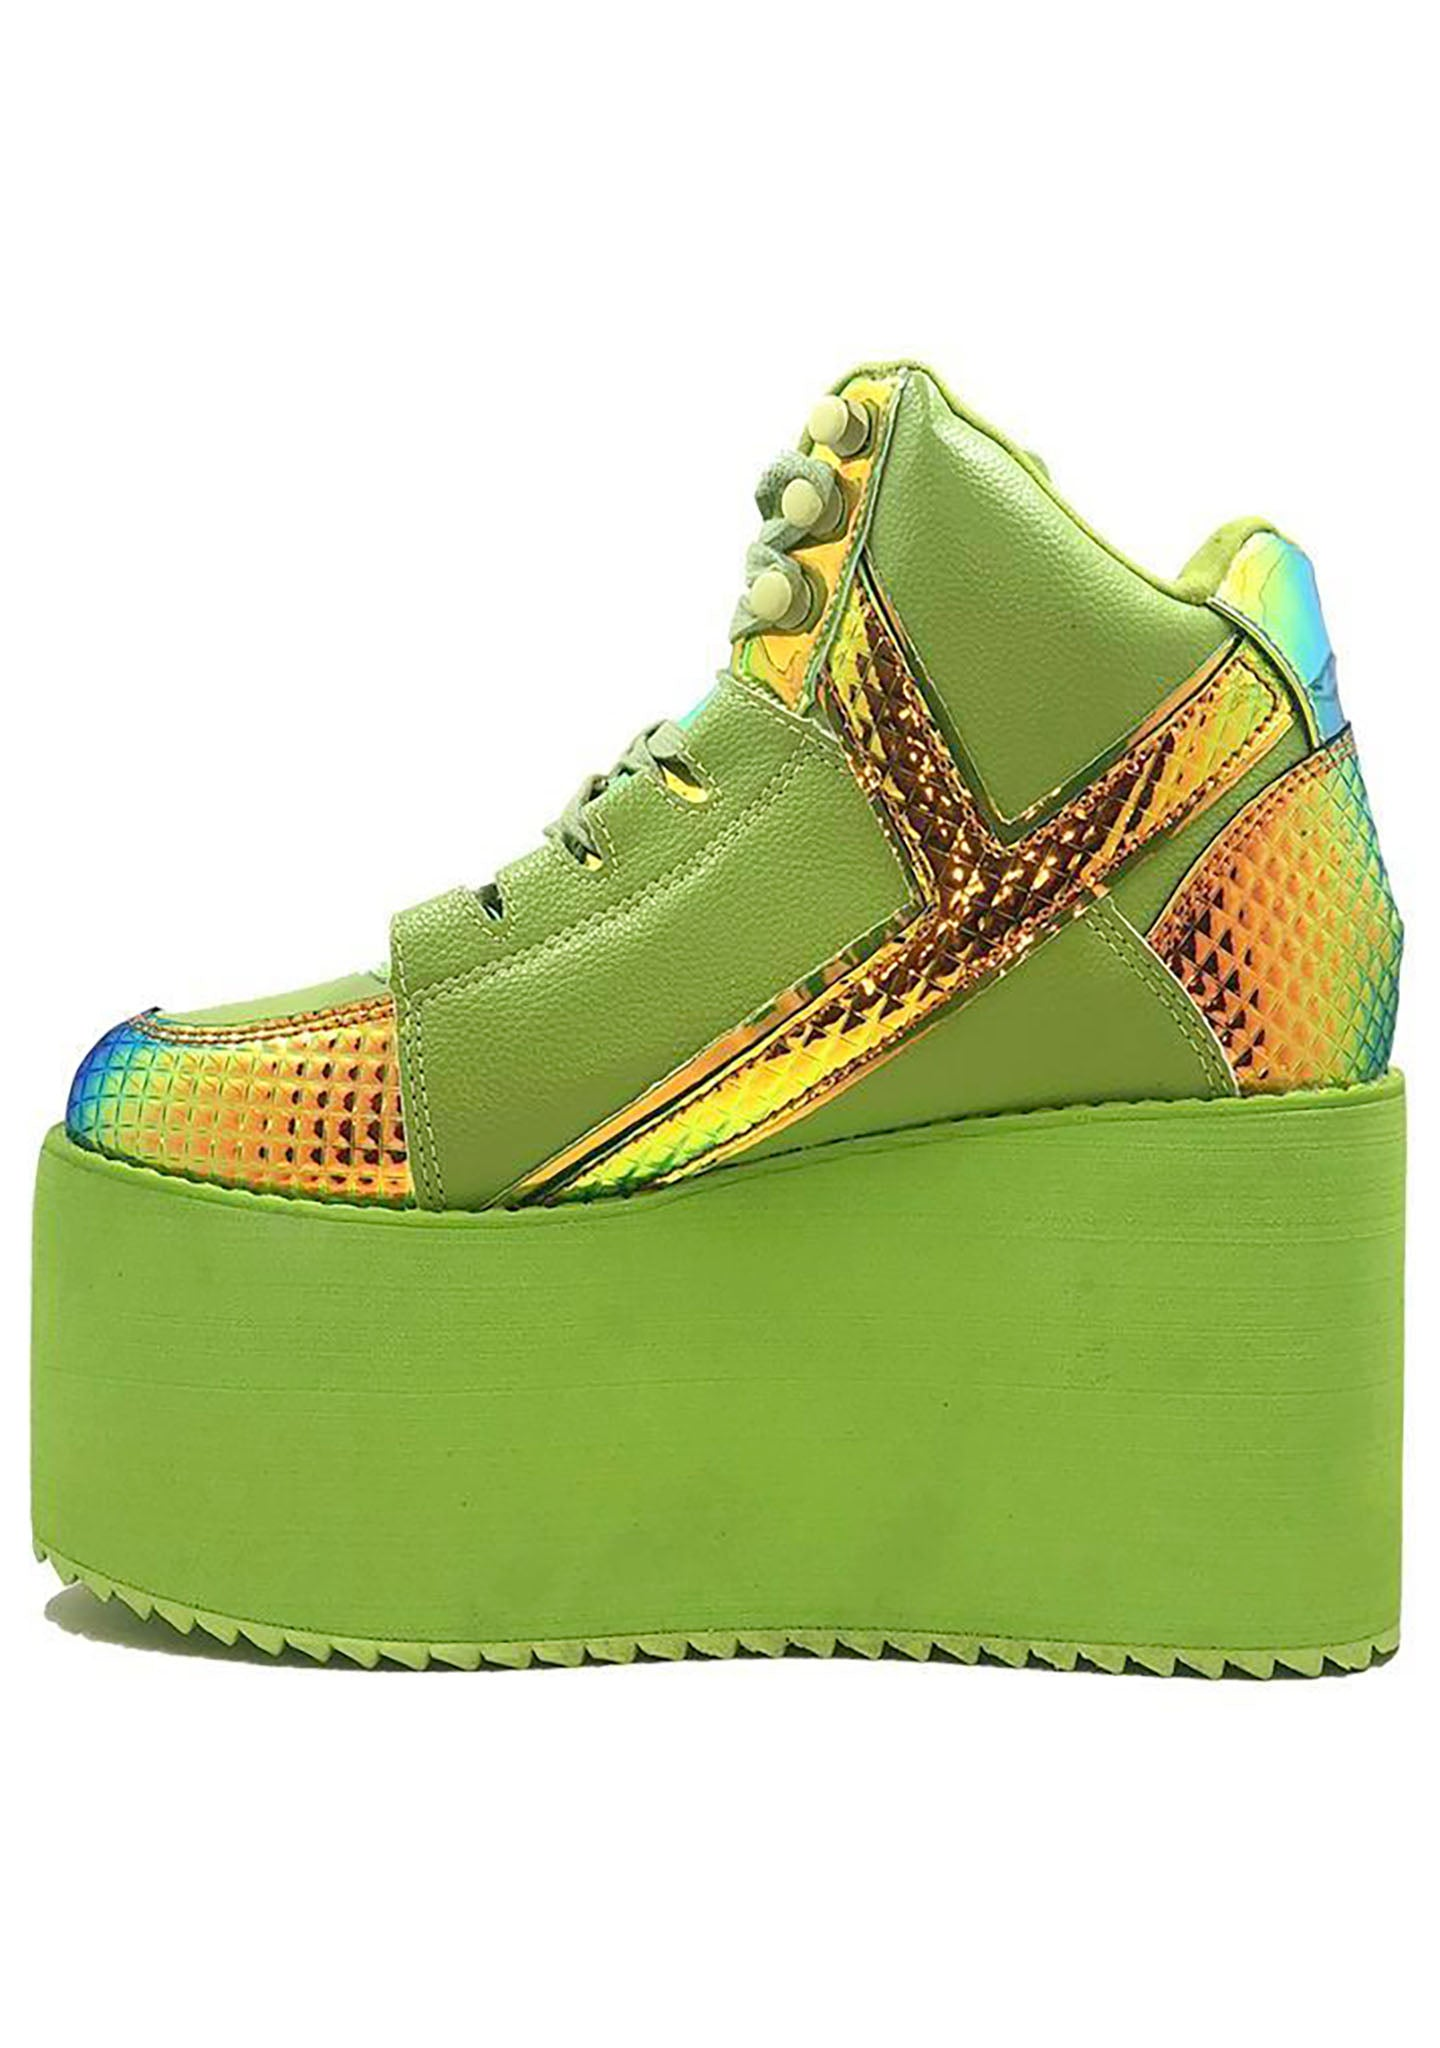 YRU Qozmo Hi Monster Platform Sneakers